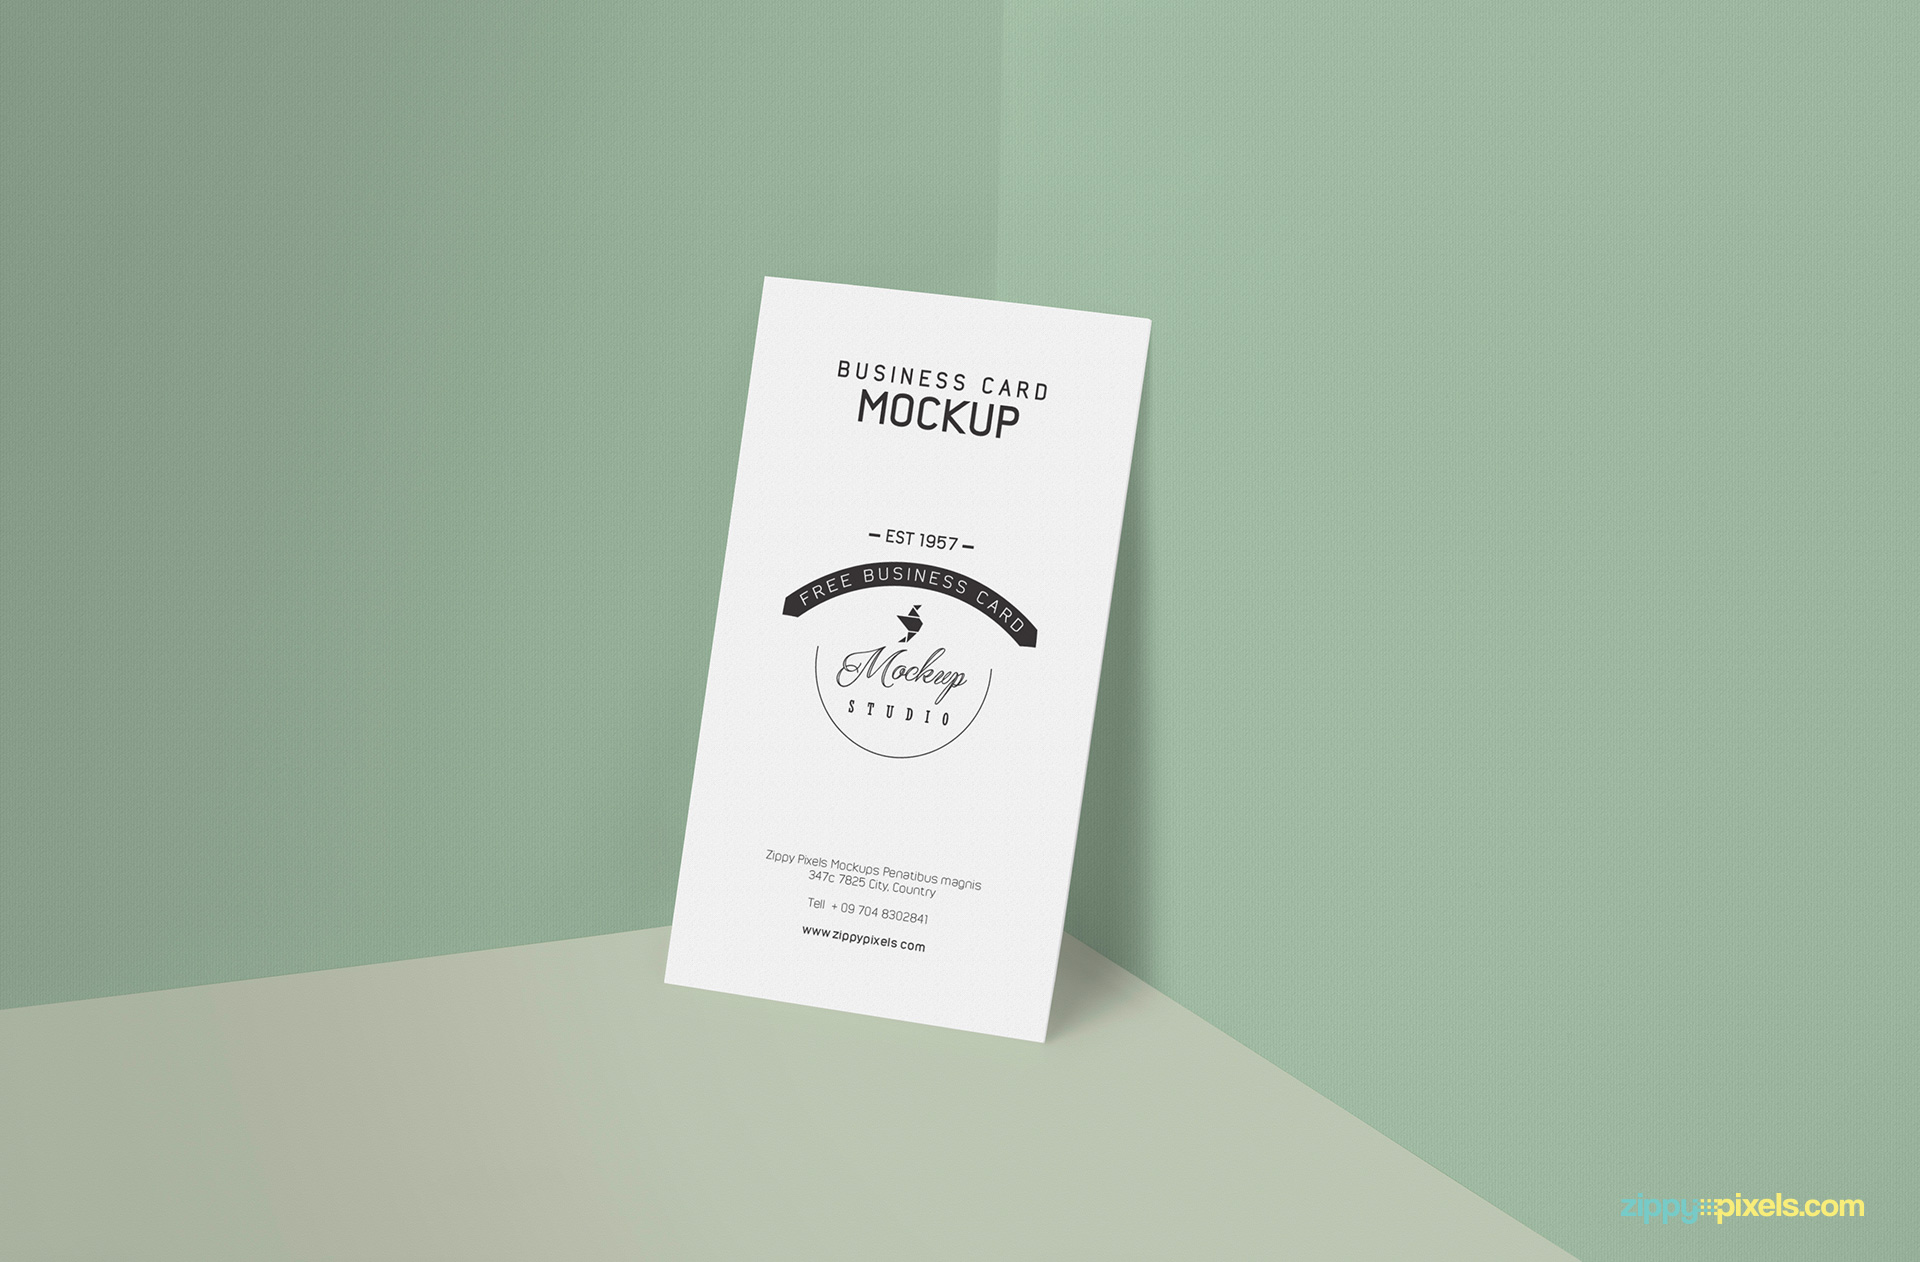 Free business card mockup in PSD format